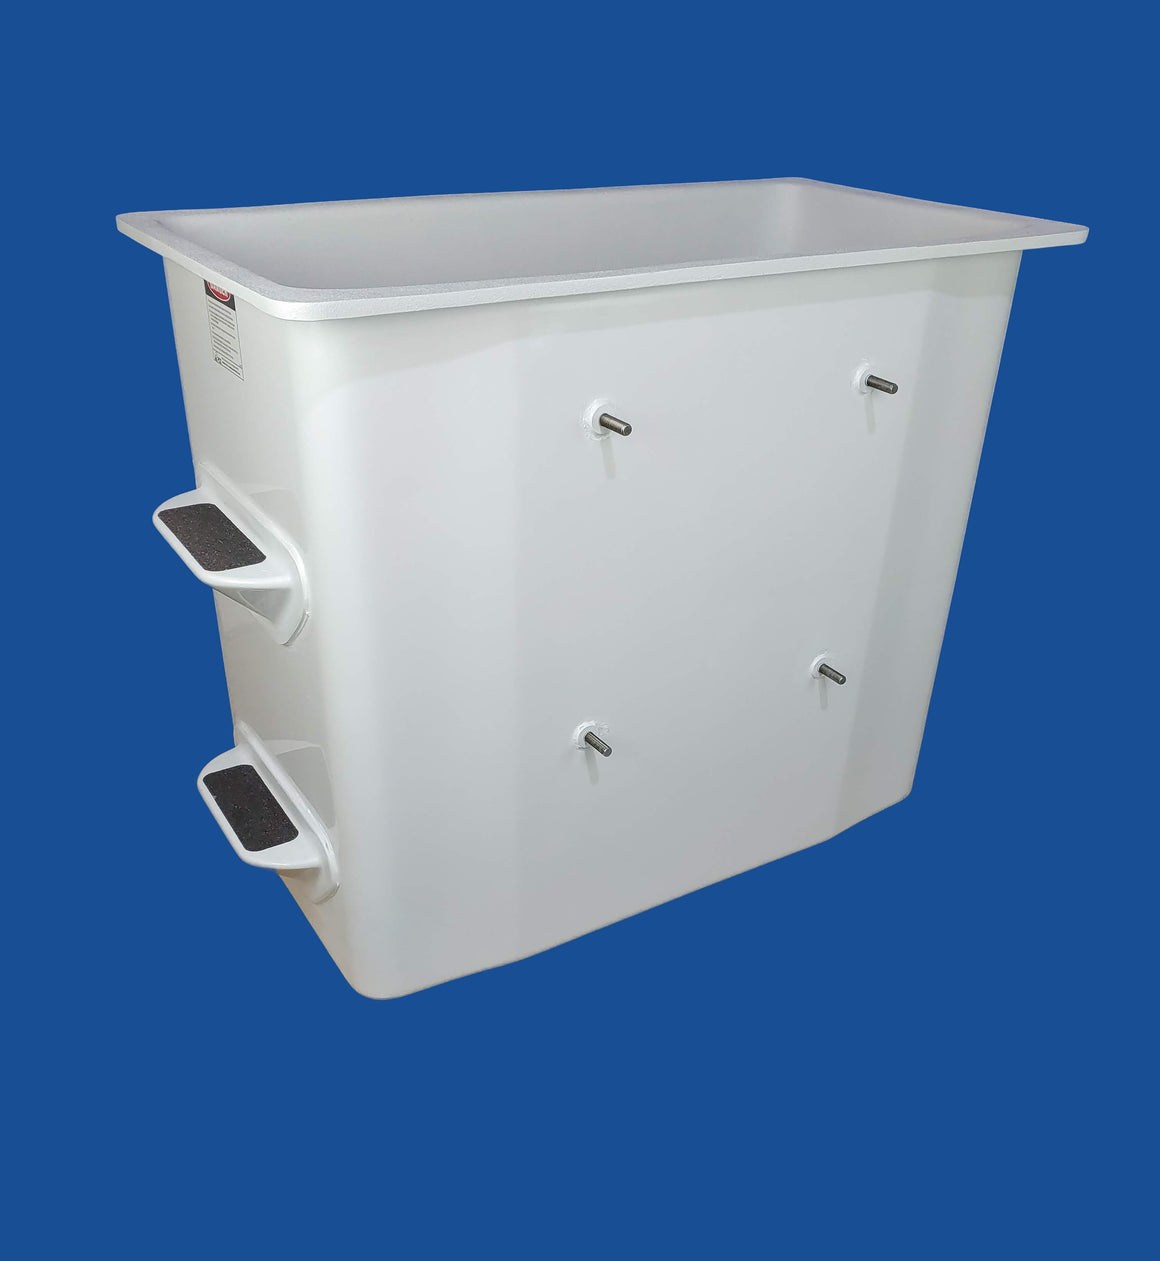 "Buckets - Hi Ranger - 24"" x 48"" x 42"" - No Controls - Bucket Truck Parts"